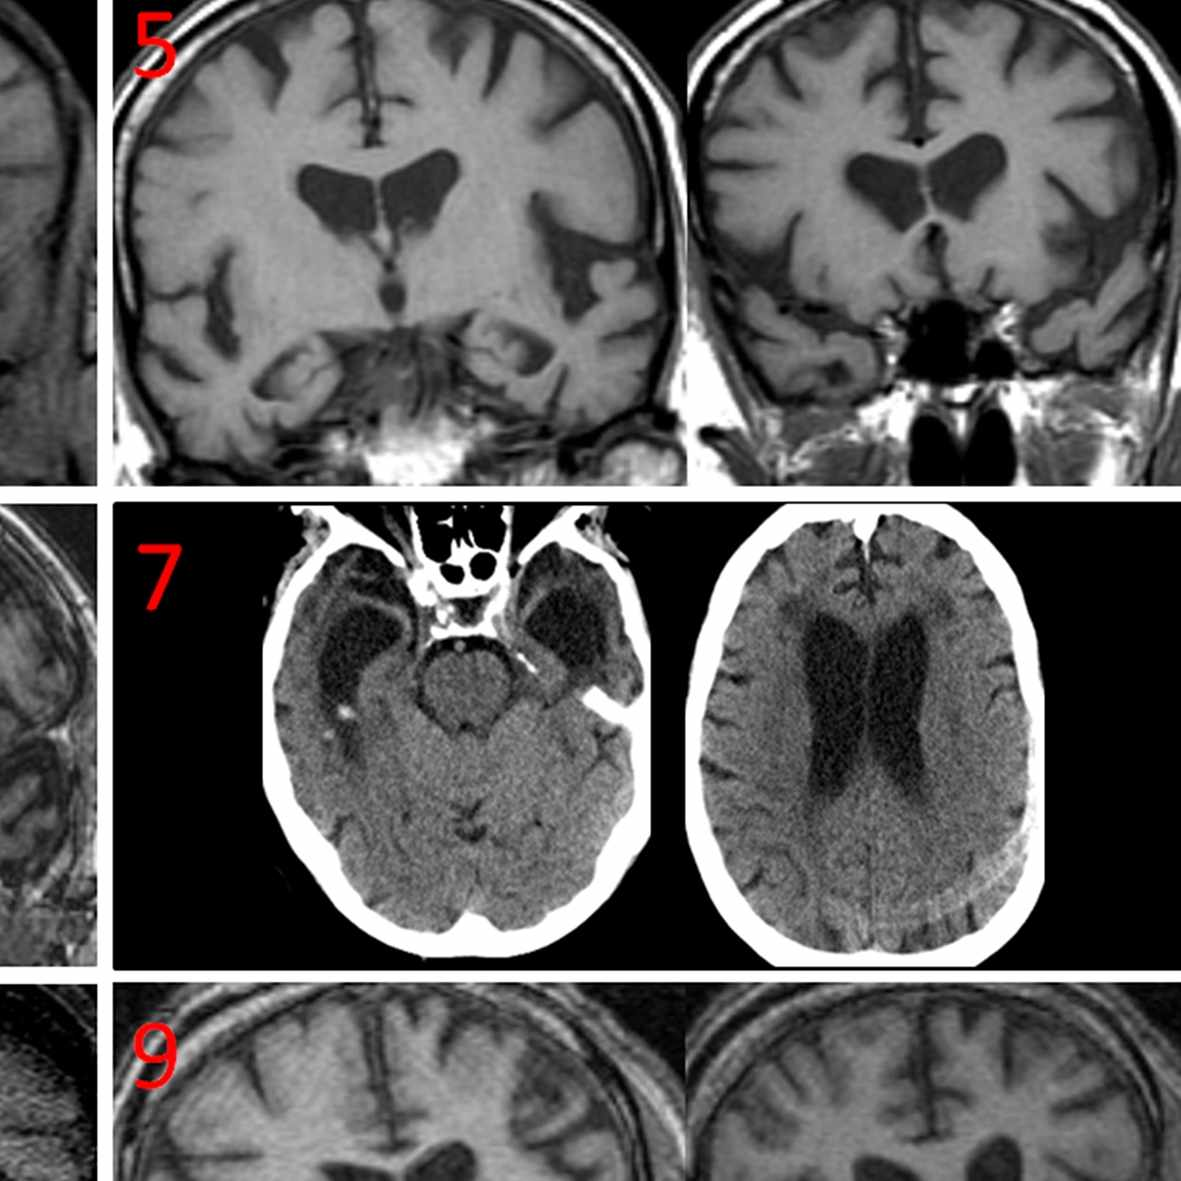 Brain scans of the six dementia patients who exhibited coprophagia showed medial temporal lobe atrophy, or degeneration